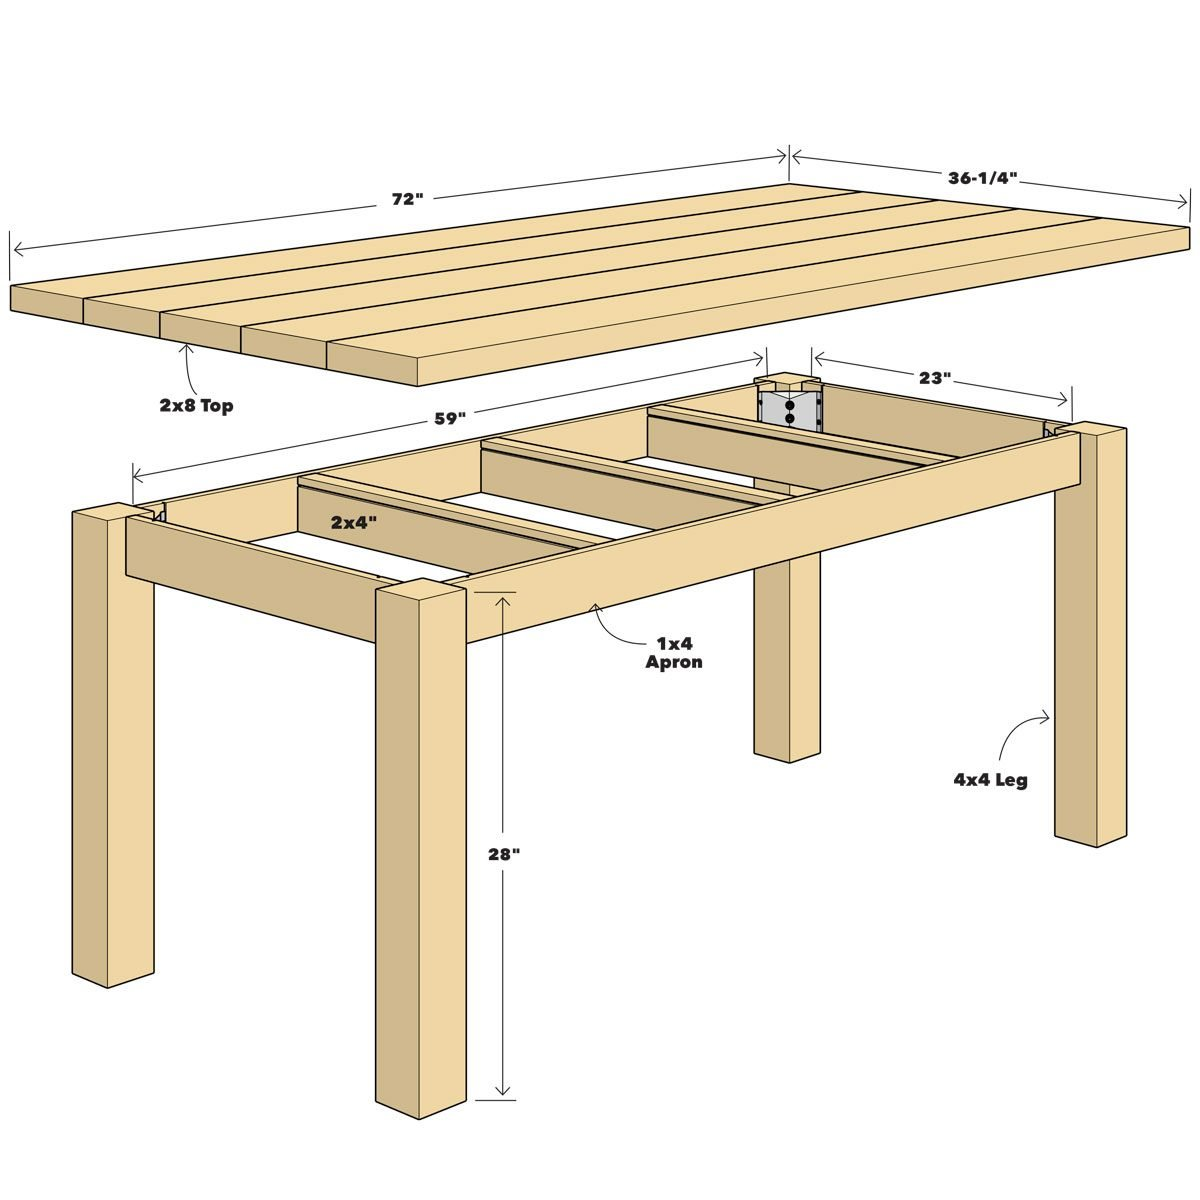 Build a Simple Reclaimed Wood Table | Family Handyman